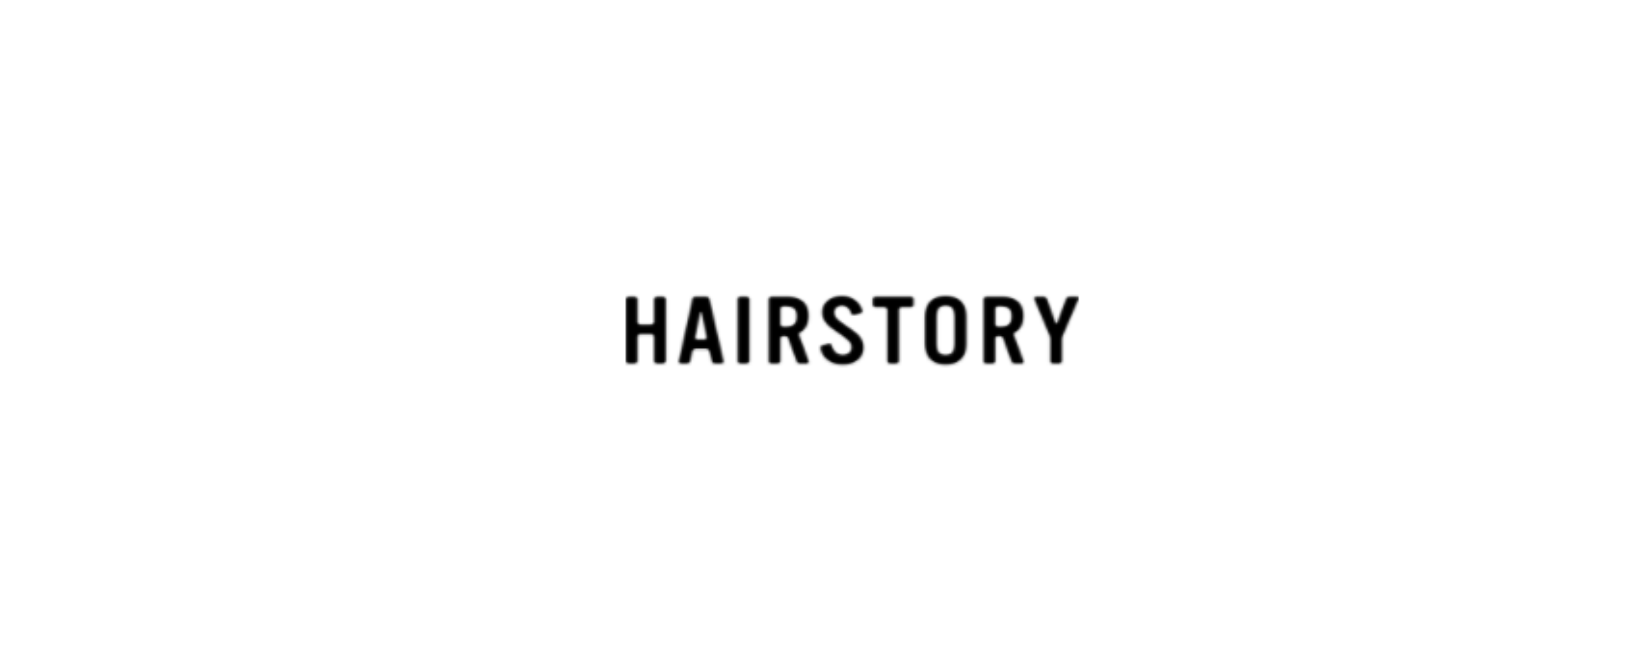 Hairstory Discount Code 2021